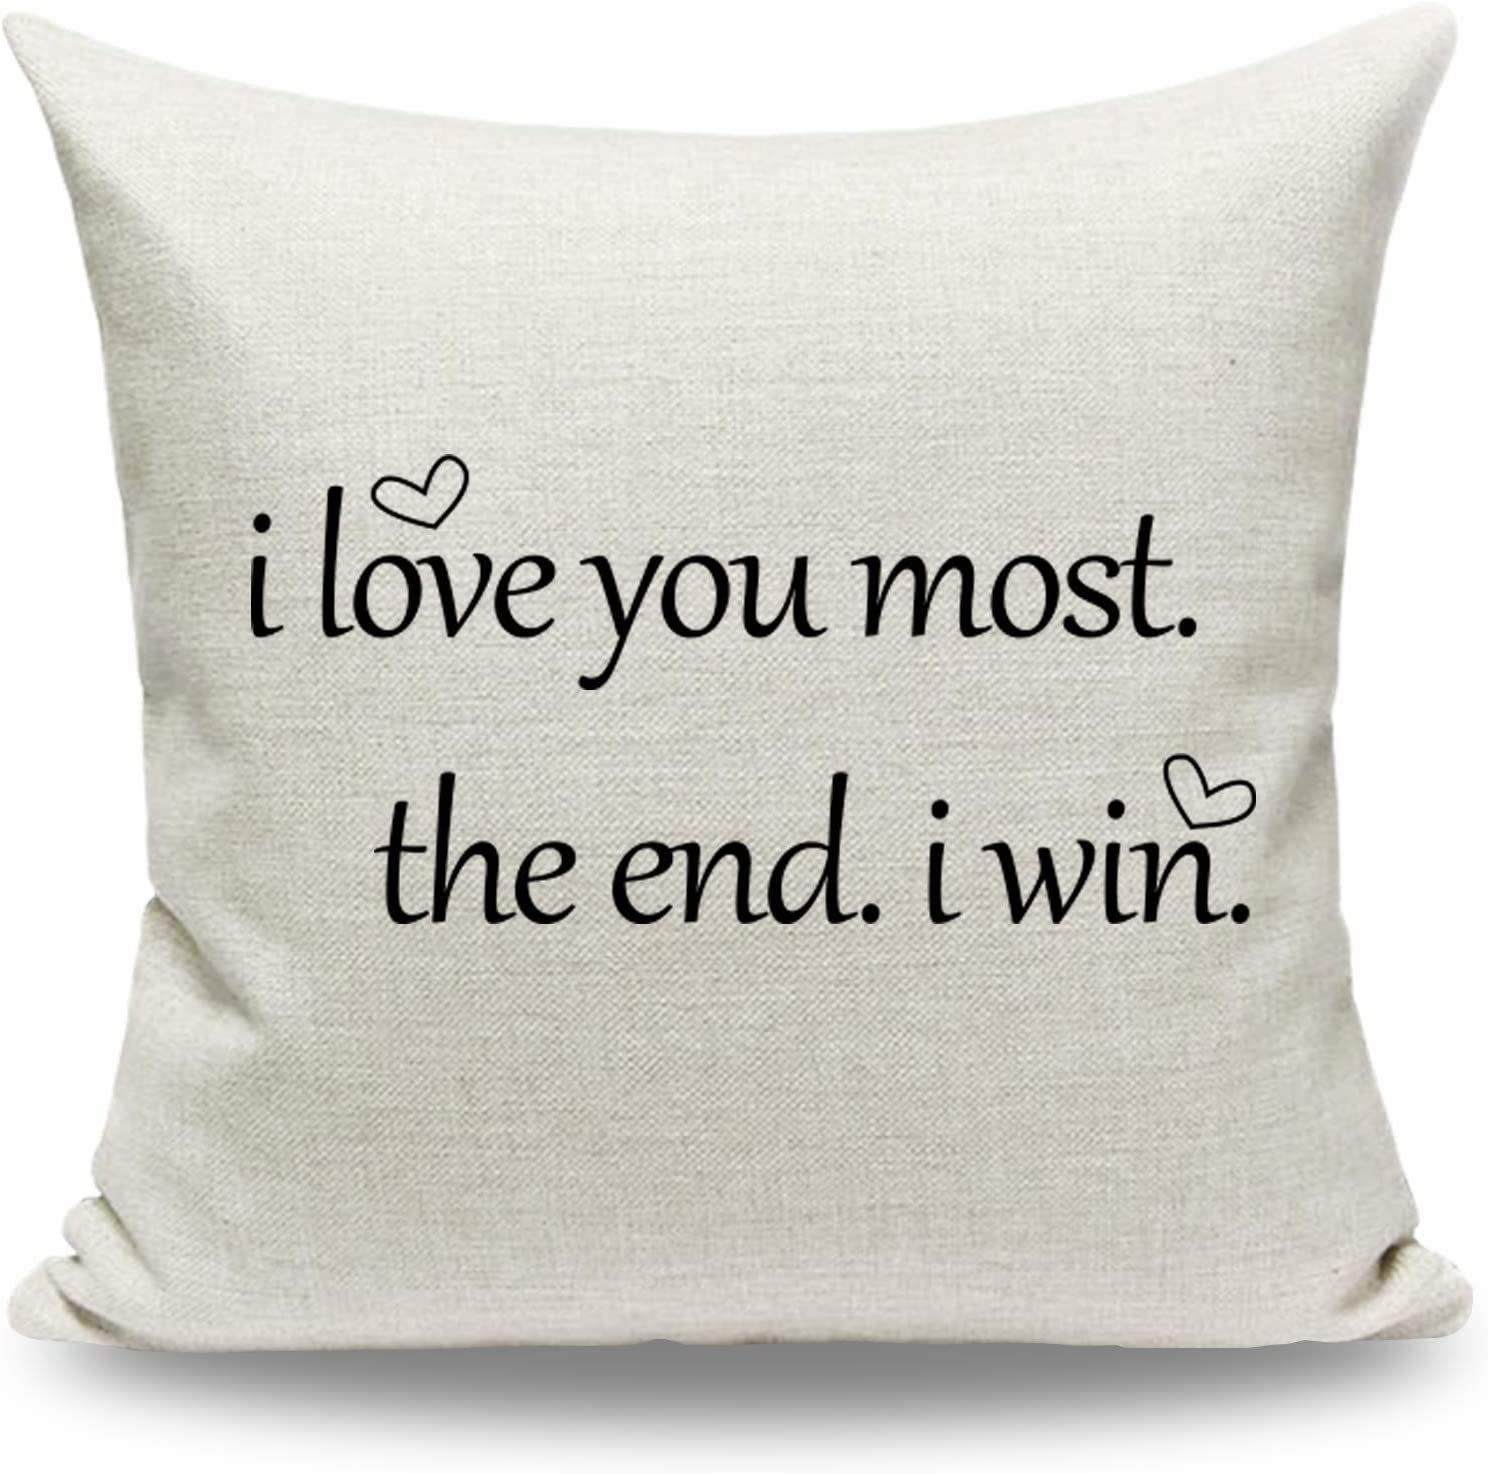 CARRIE HOME Love You More Pillow Covers 18x18 Love Gifts for Girlfriend Decorative Throw Pillow Cover for Home Sofa Couch